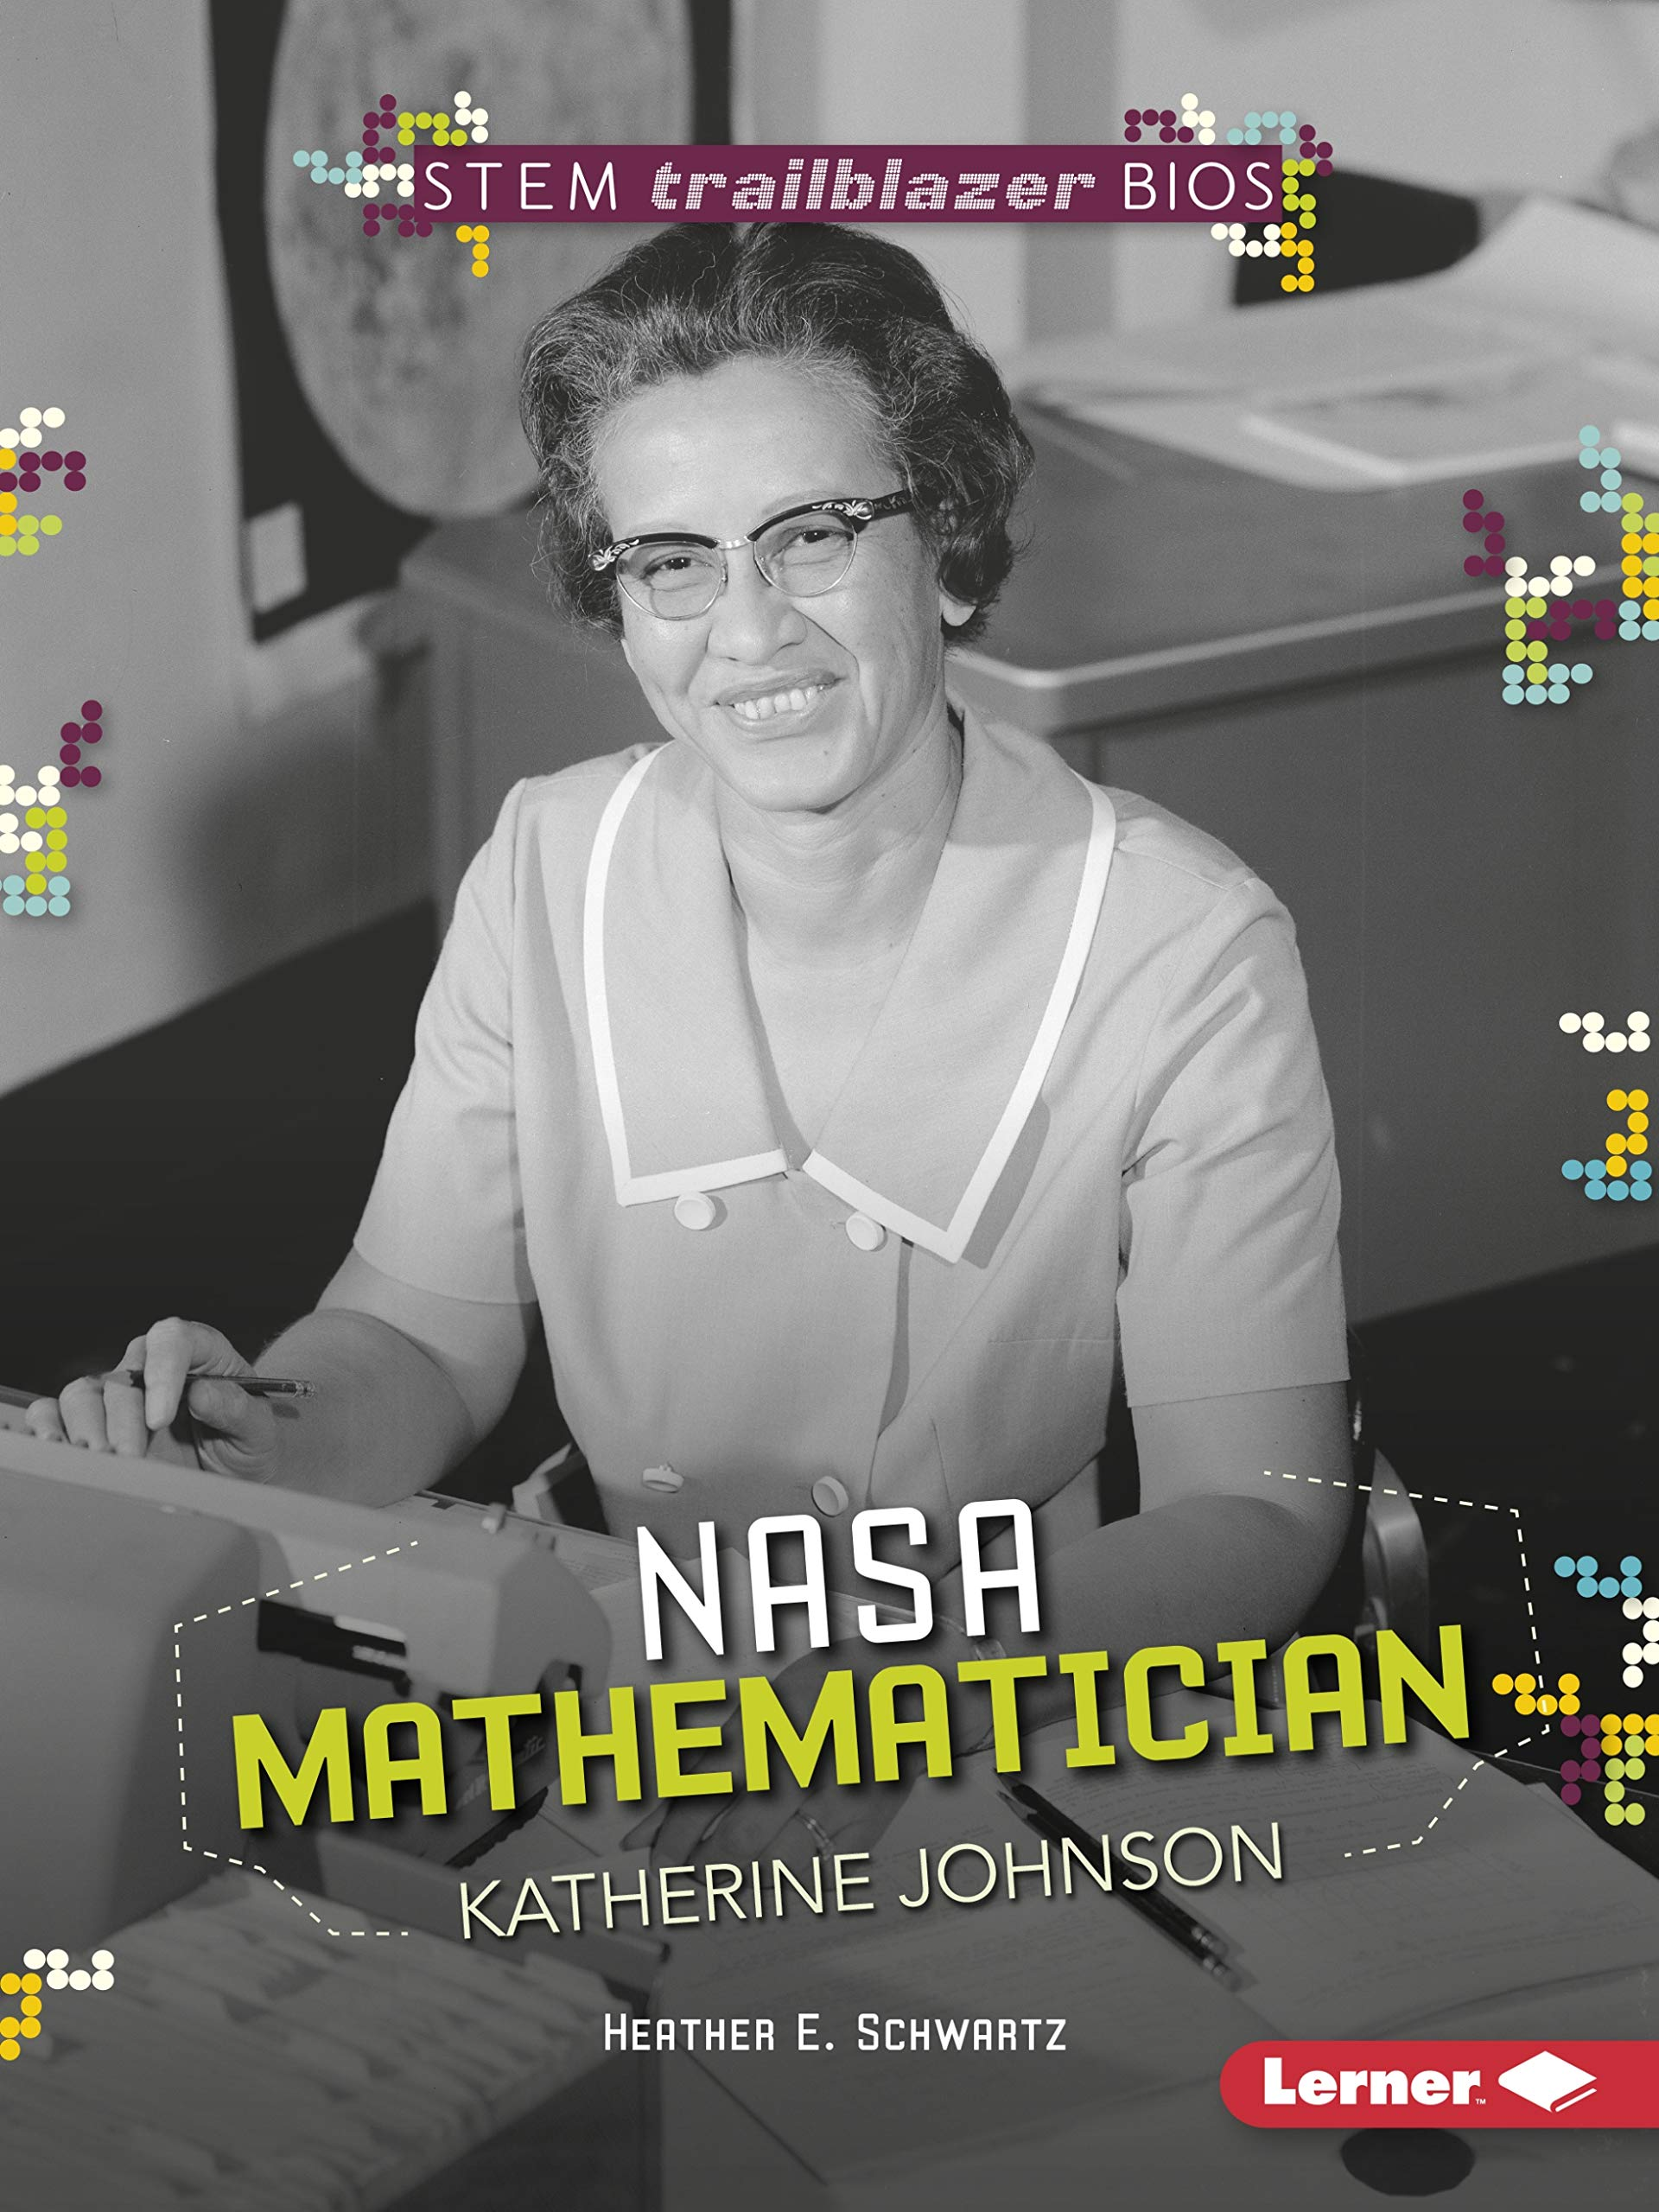 NASA Mathematician Katherine Johnson  Stem Trailblazer Biographies